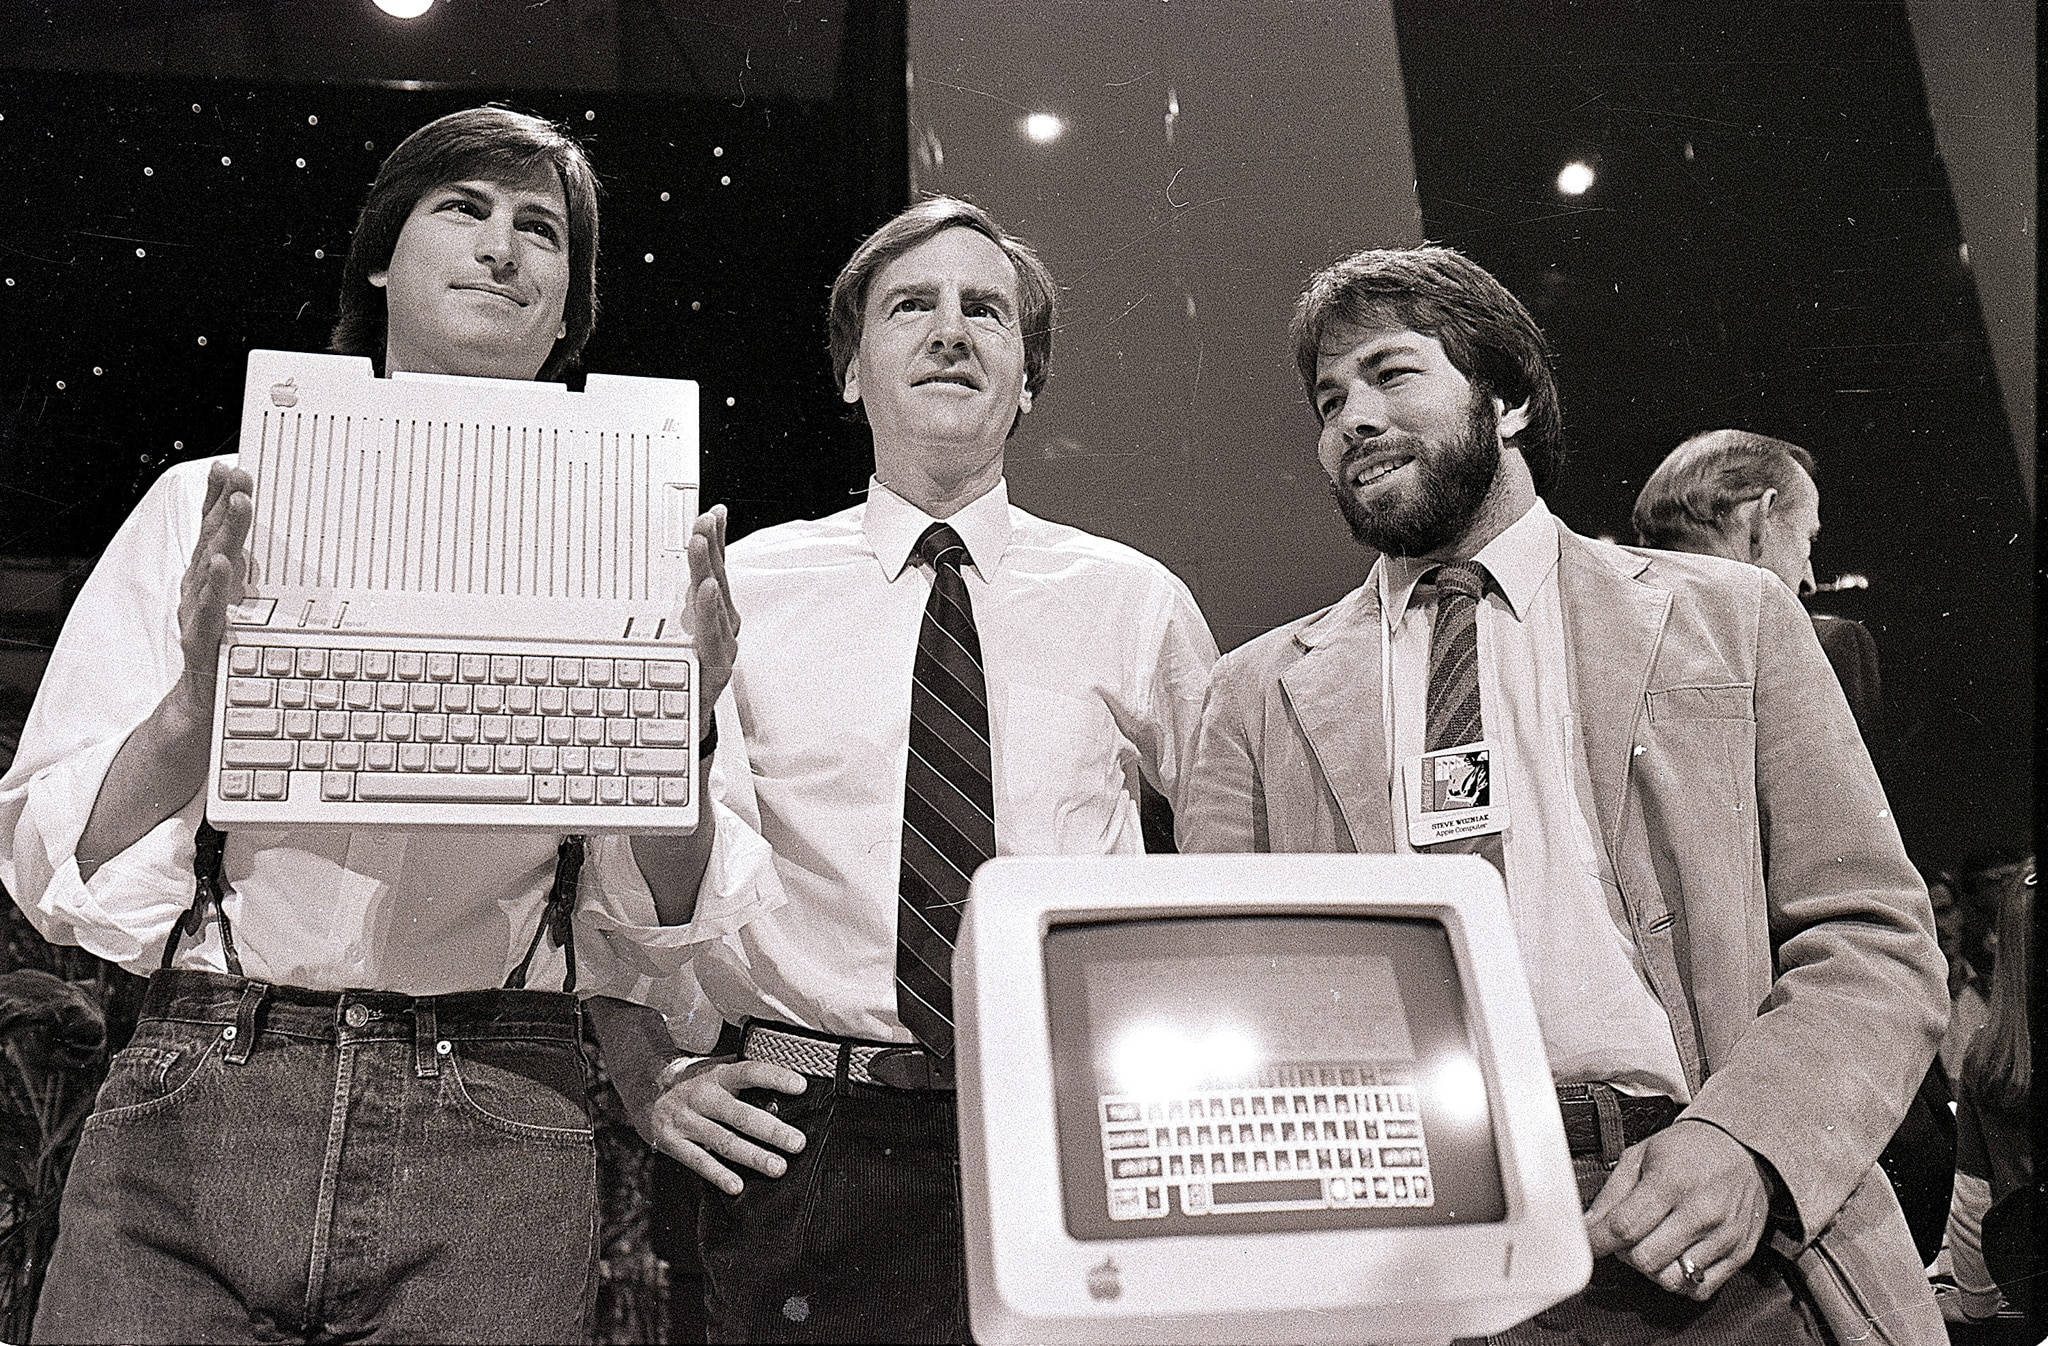 Three men standing behind a computer, one holding a keyboard (© AP Images)